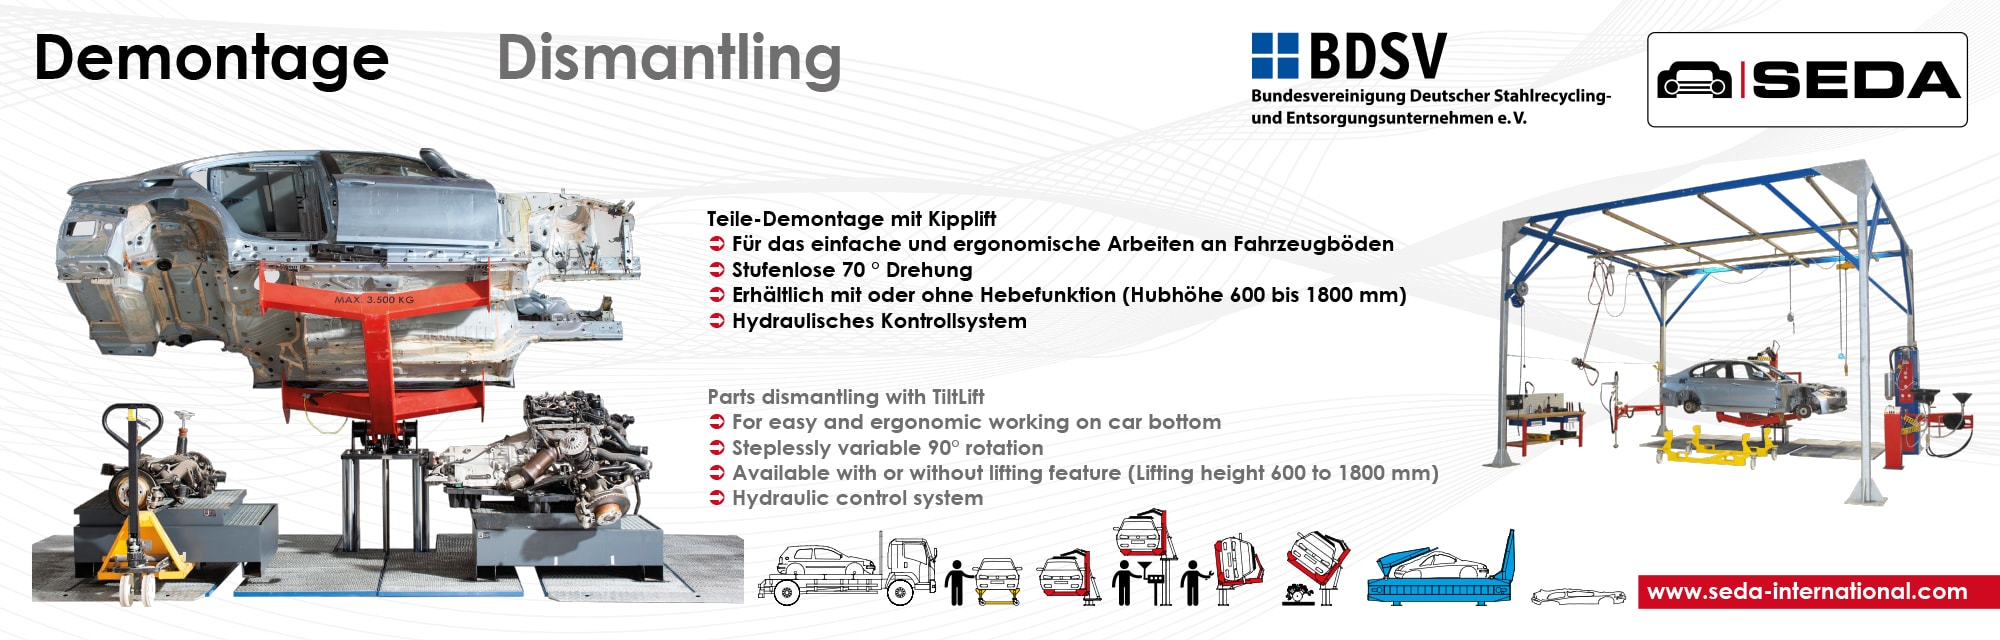 IFAT2016 Station 4 Demontage min - SEDA presented car recycling LIVE at IFAT 2016